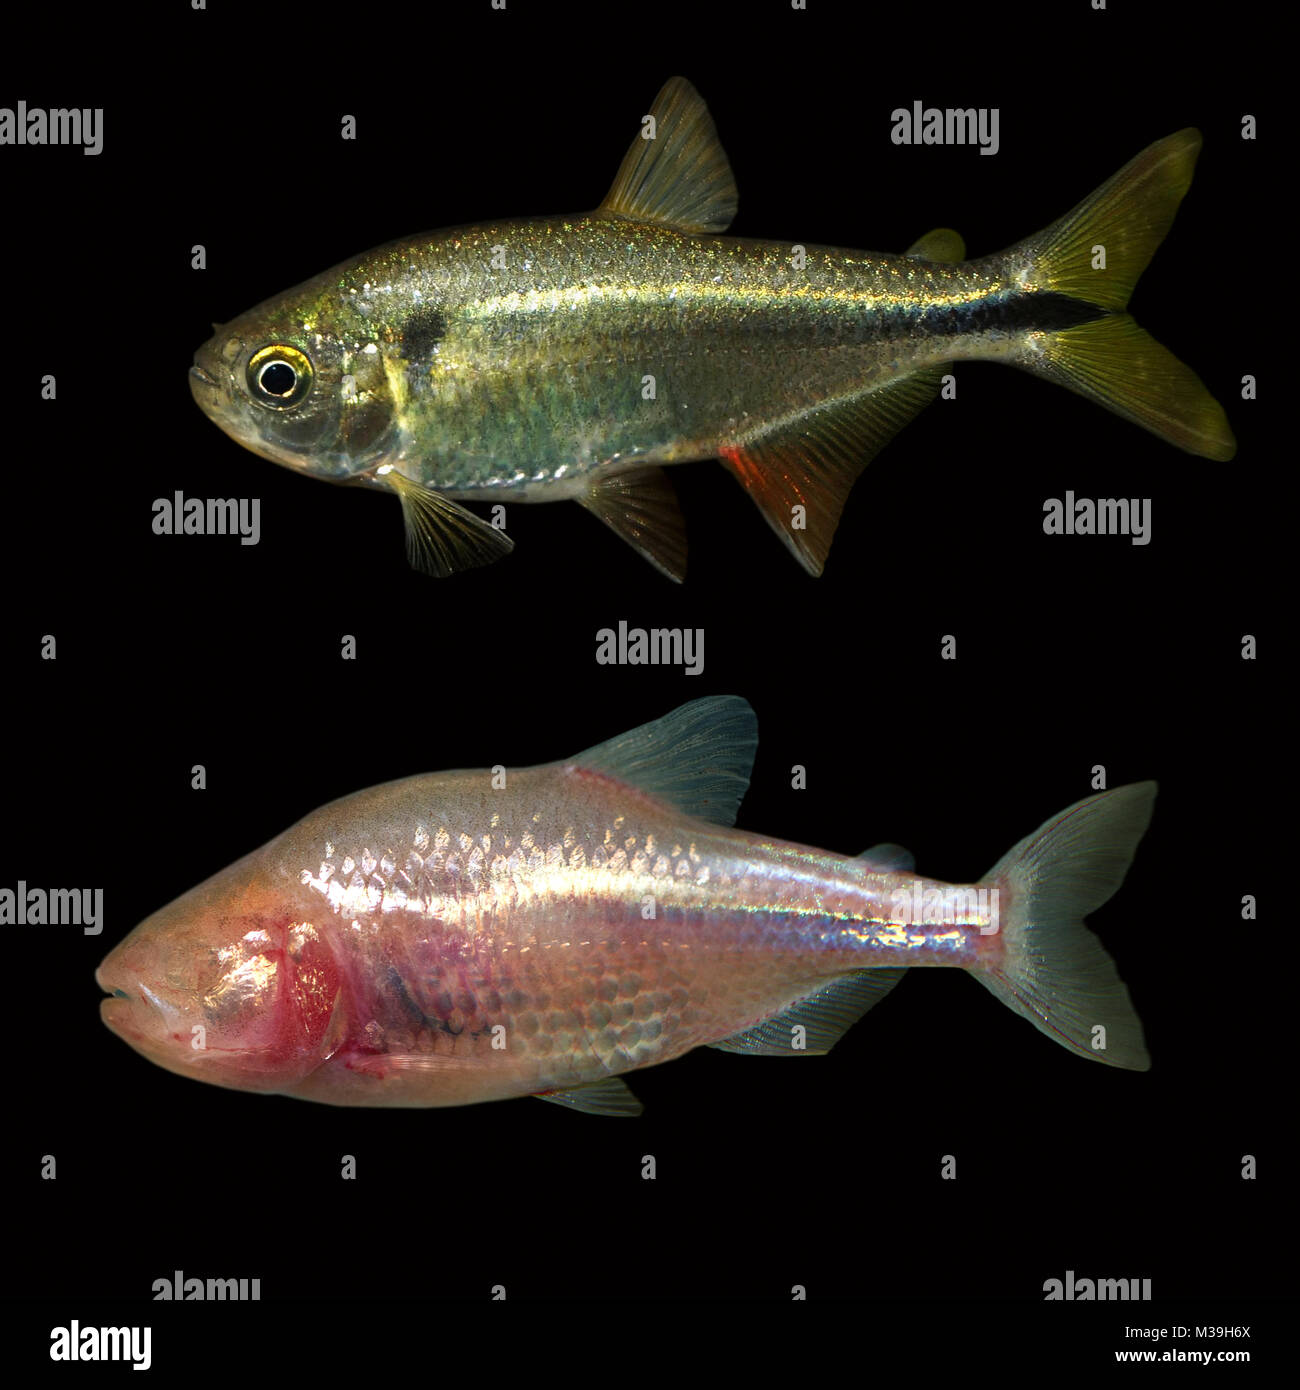 Mexican tetra or blind cave fish Astyanax mexicanus. Two form of this fish. The surface-dwelling form (up) is something - Stock Image